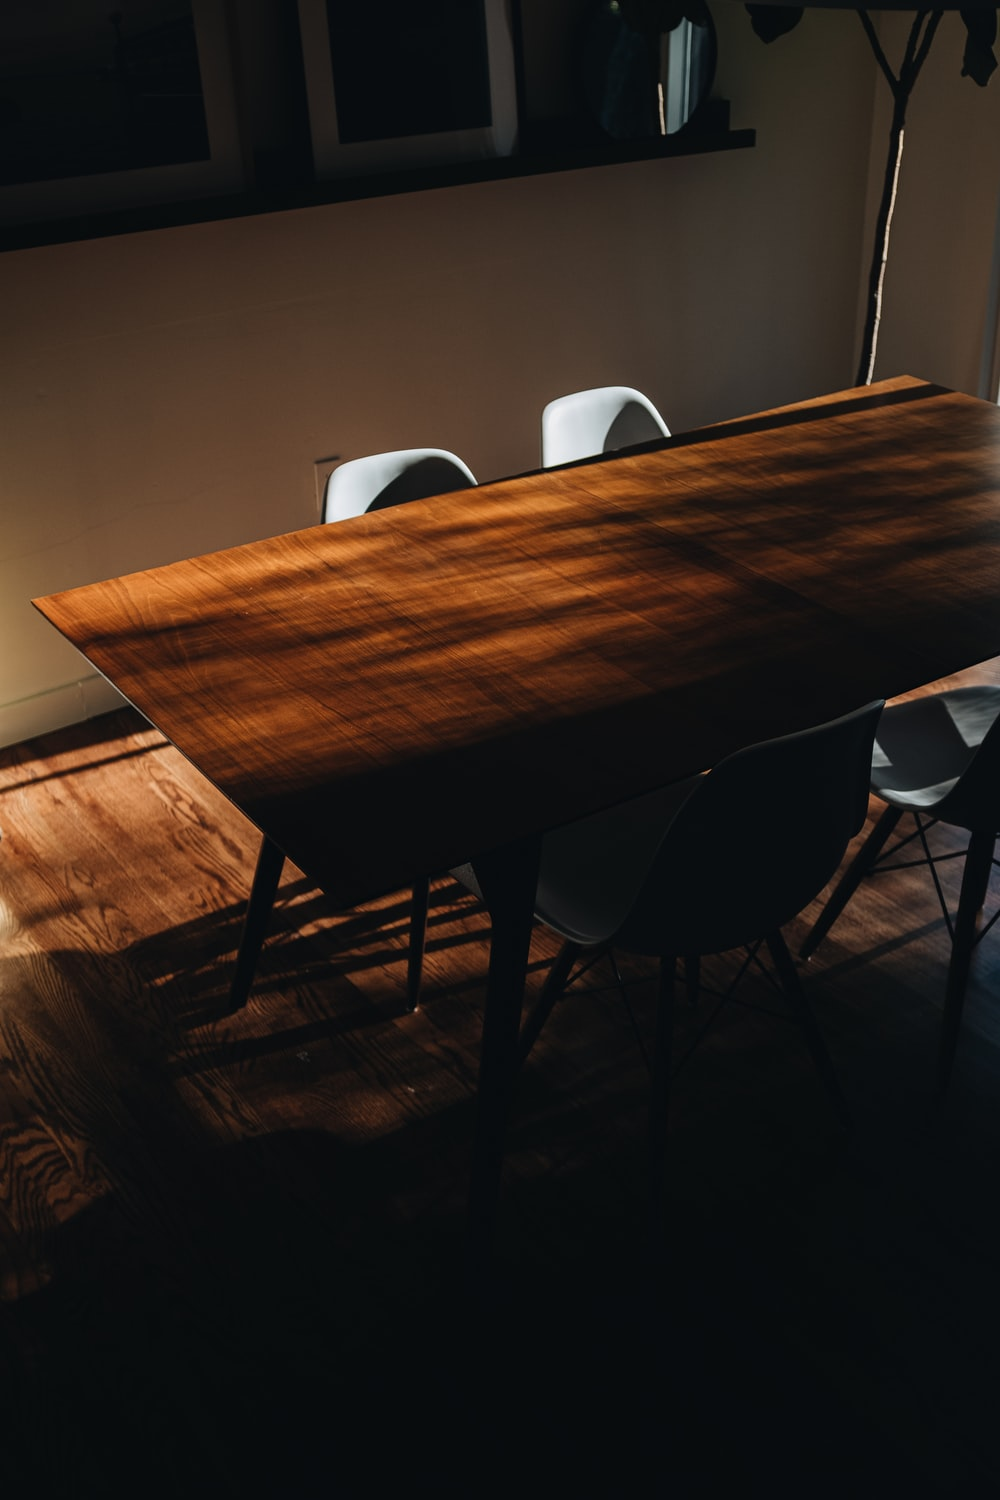 brown wooden table